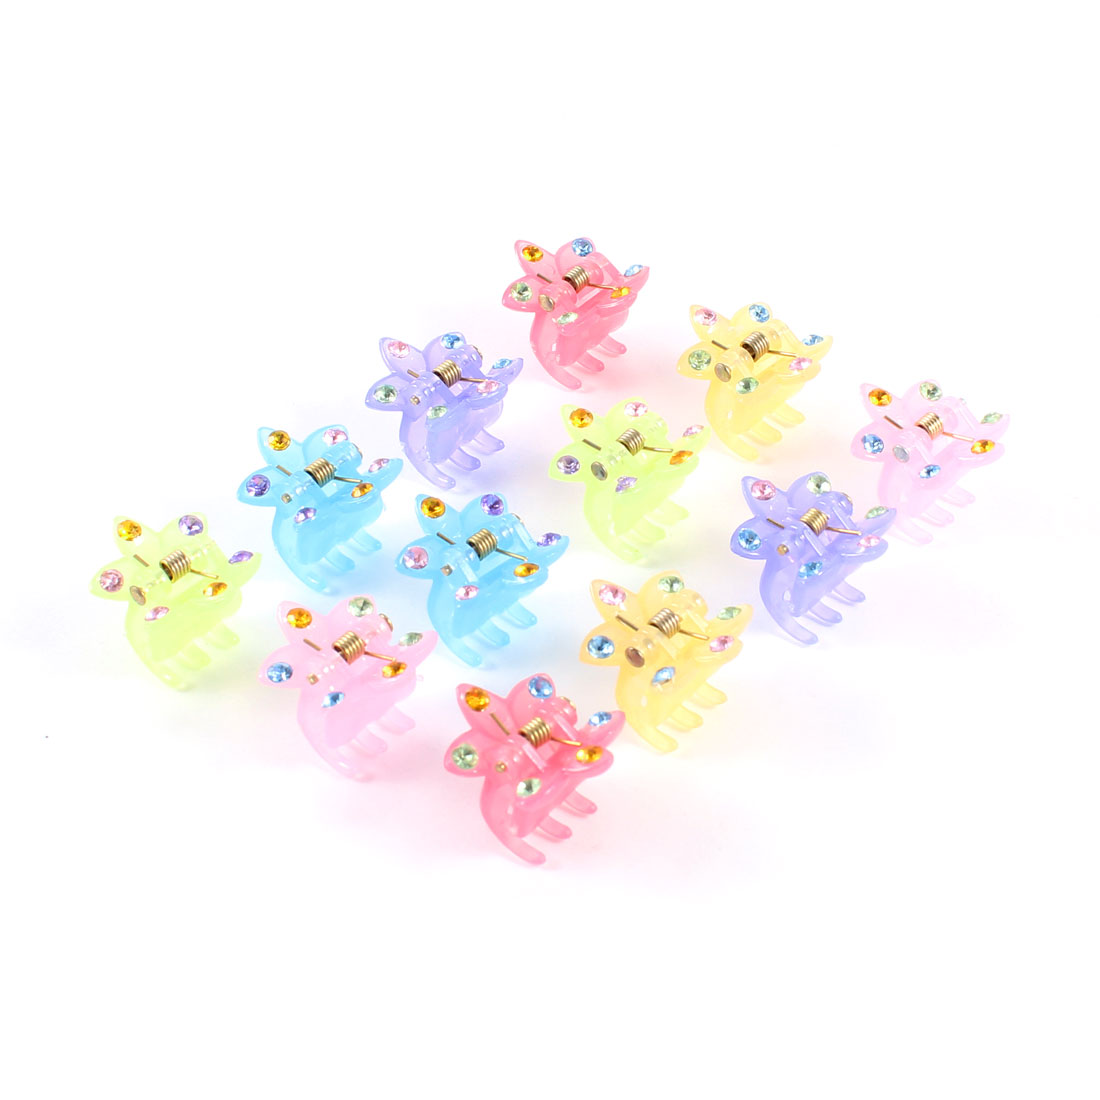 12 Pcs Assorted Color Faux Rhinestone Decor Butterfly Barrette Claw Hair Clip